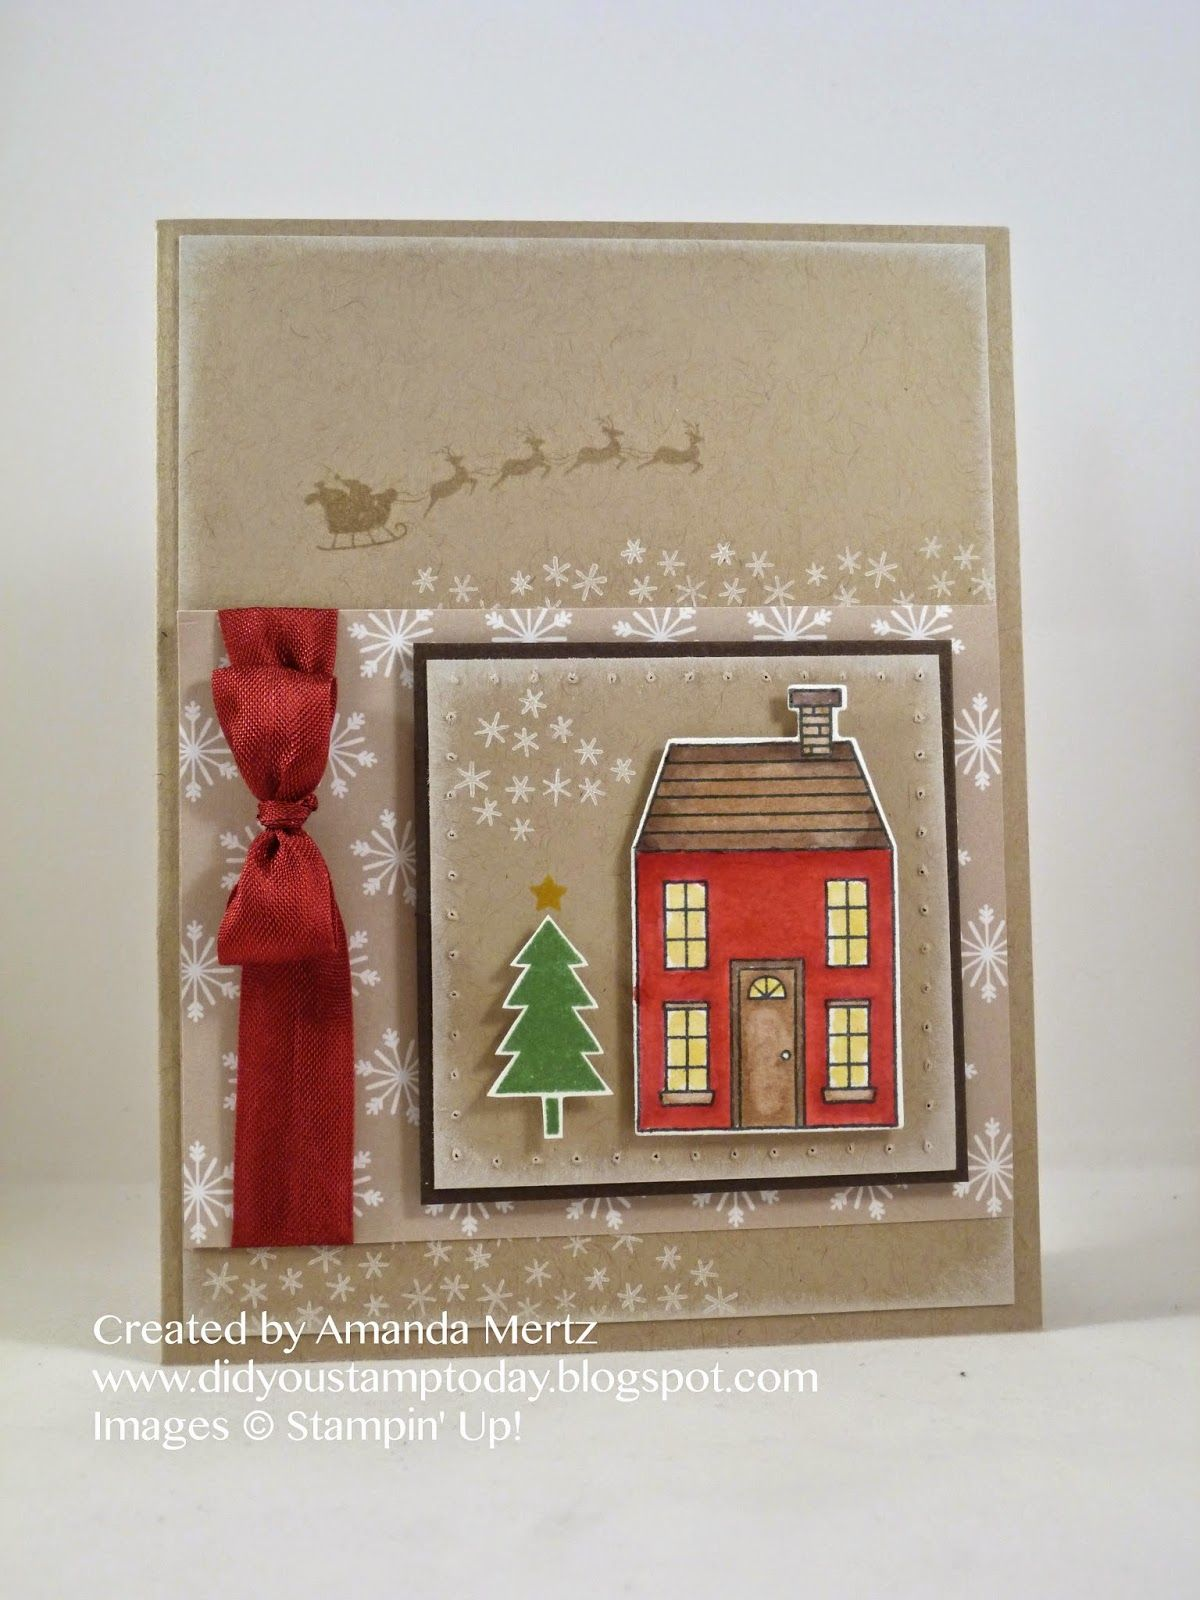 Did You Stamp Today?: Cozy Christmas House - Fab Friday 53 #holidayhome #2014holidaycatalog